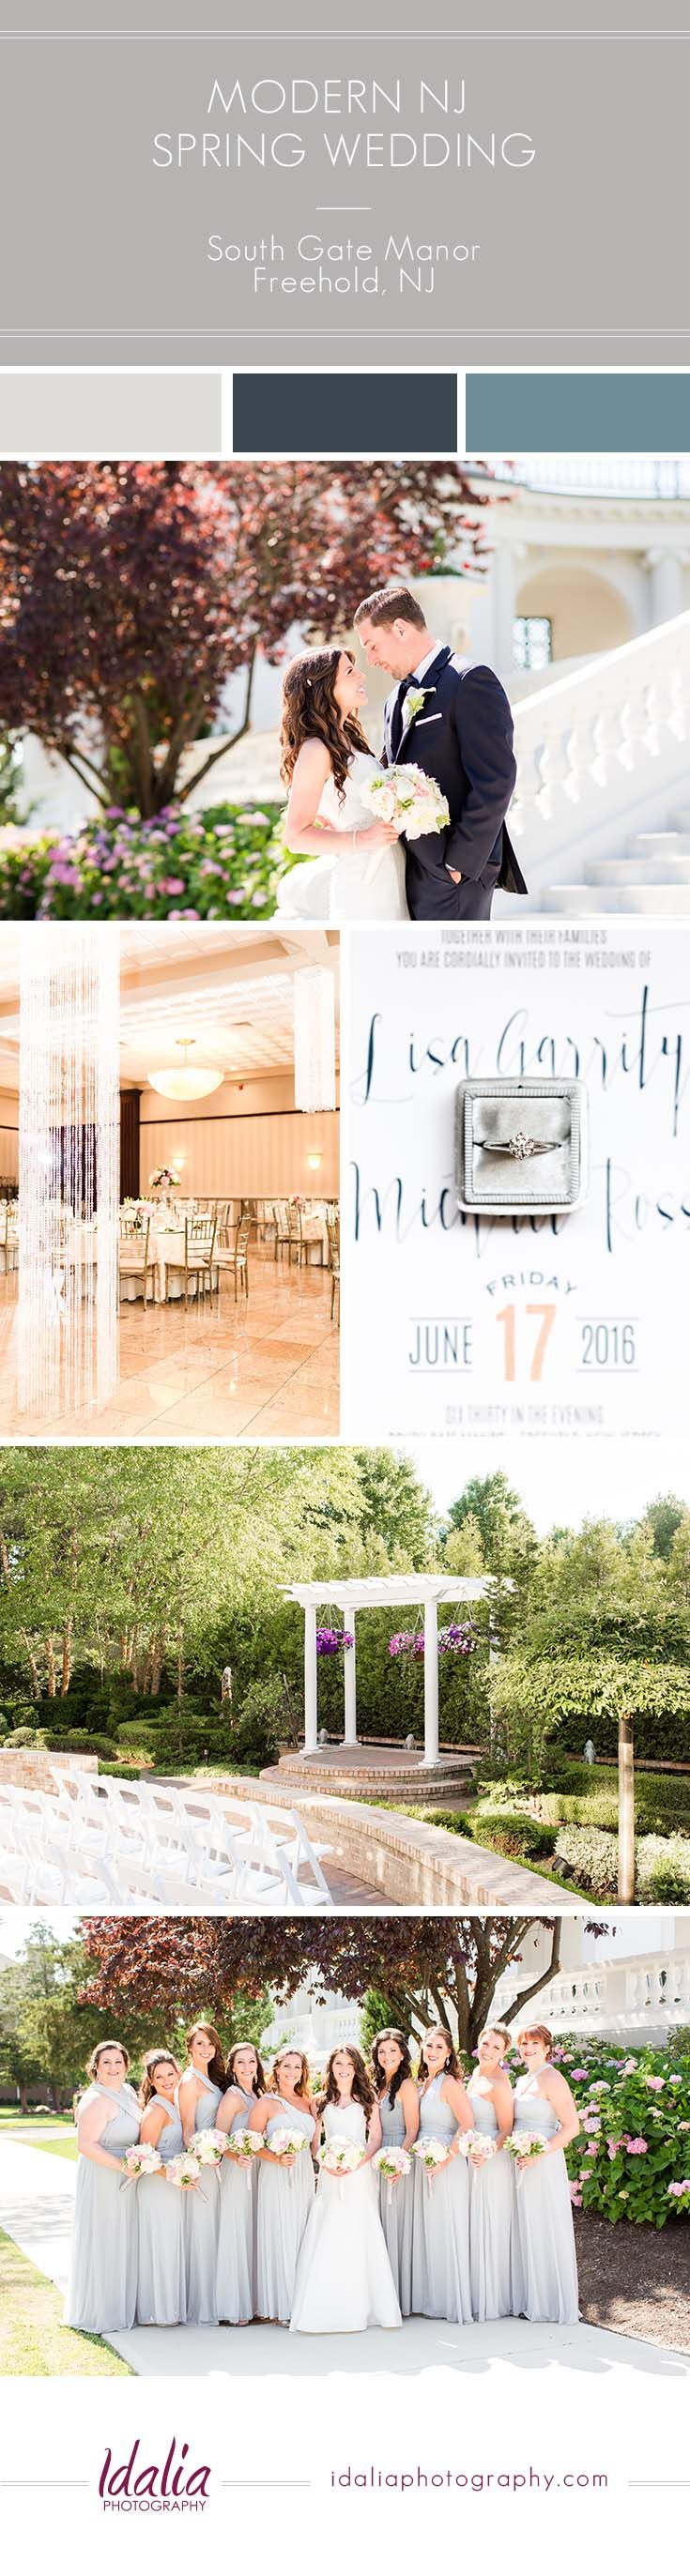 wedding venues asbury park nj%0A South Gate Manor is a NJ Wedding Venue located in Freehold  New Jersey